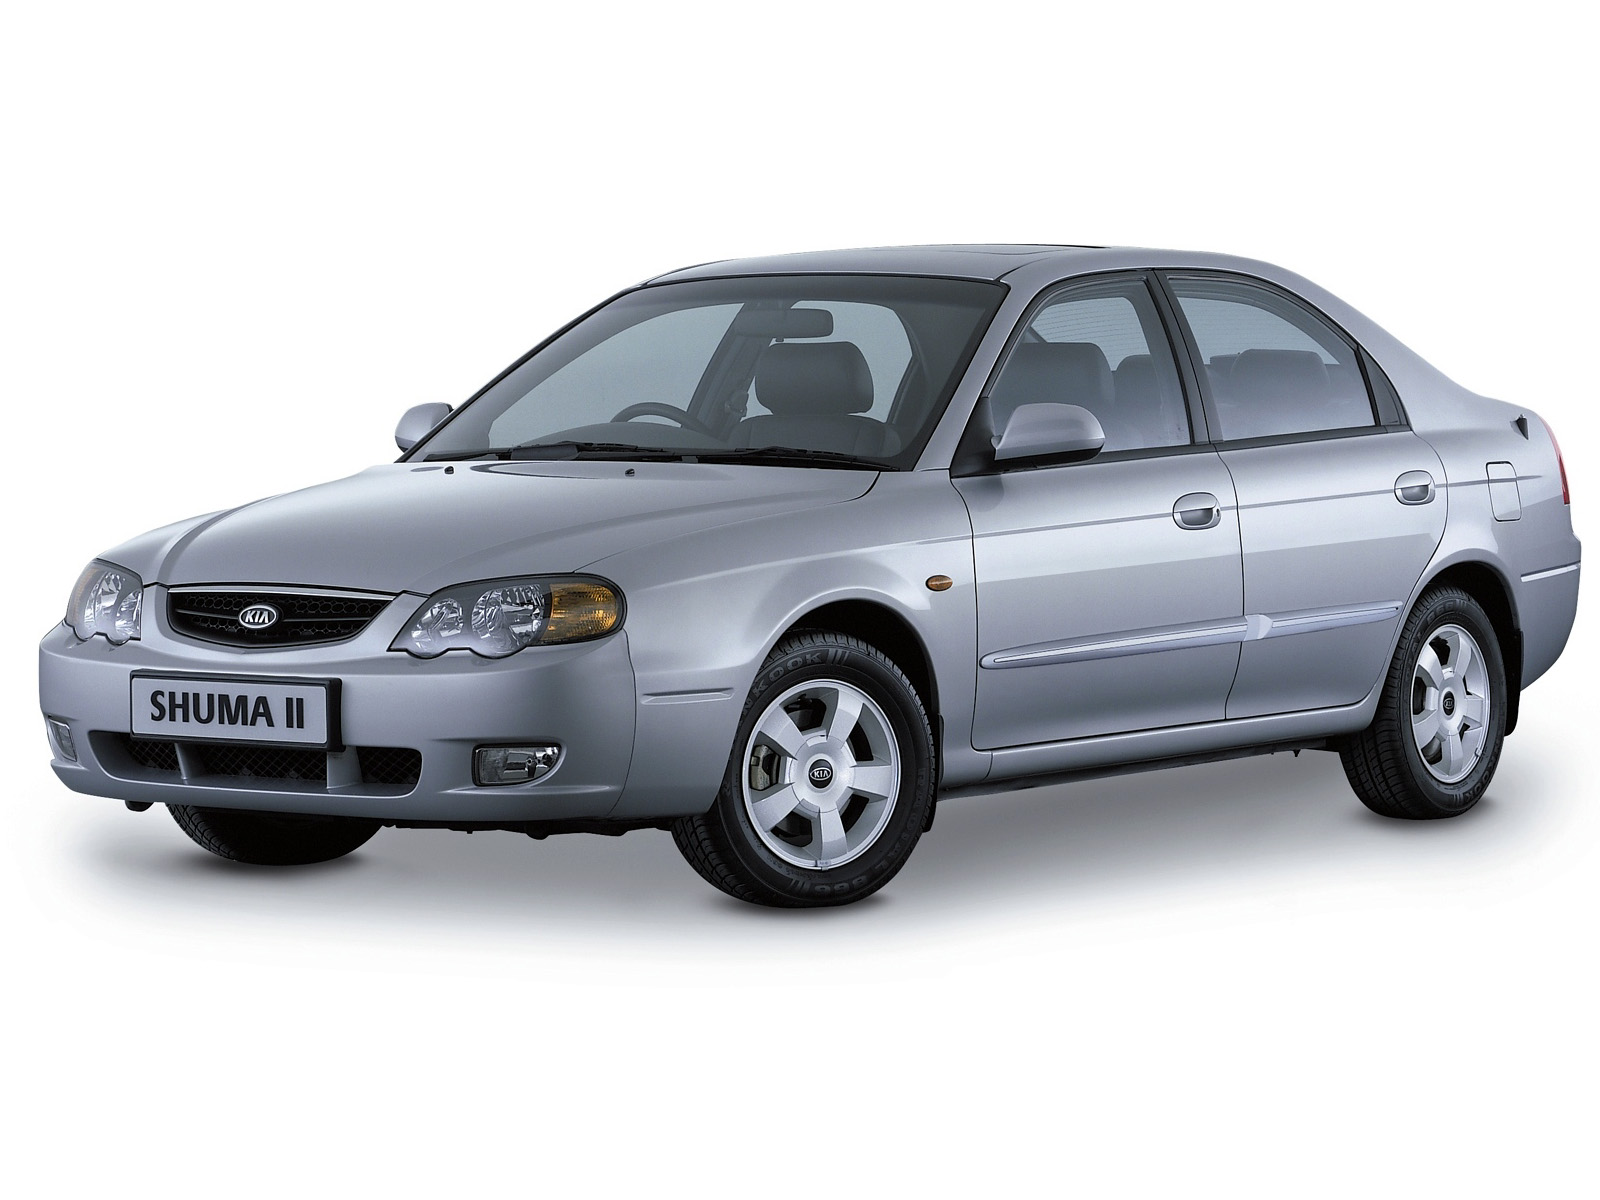 2001 Kia Shuma Hatchback 5-door